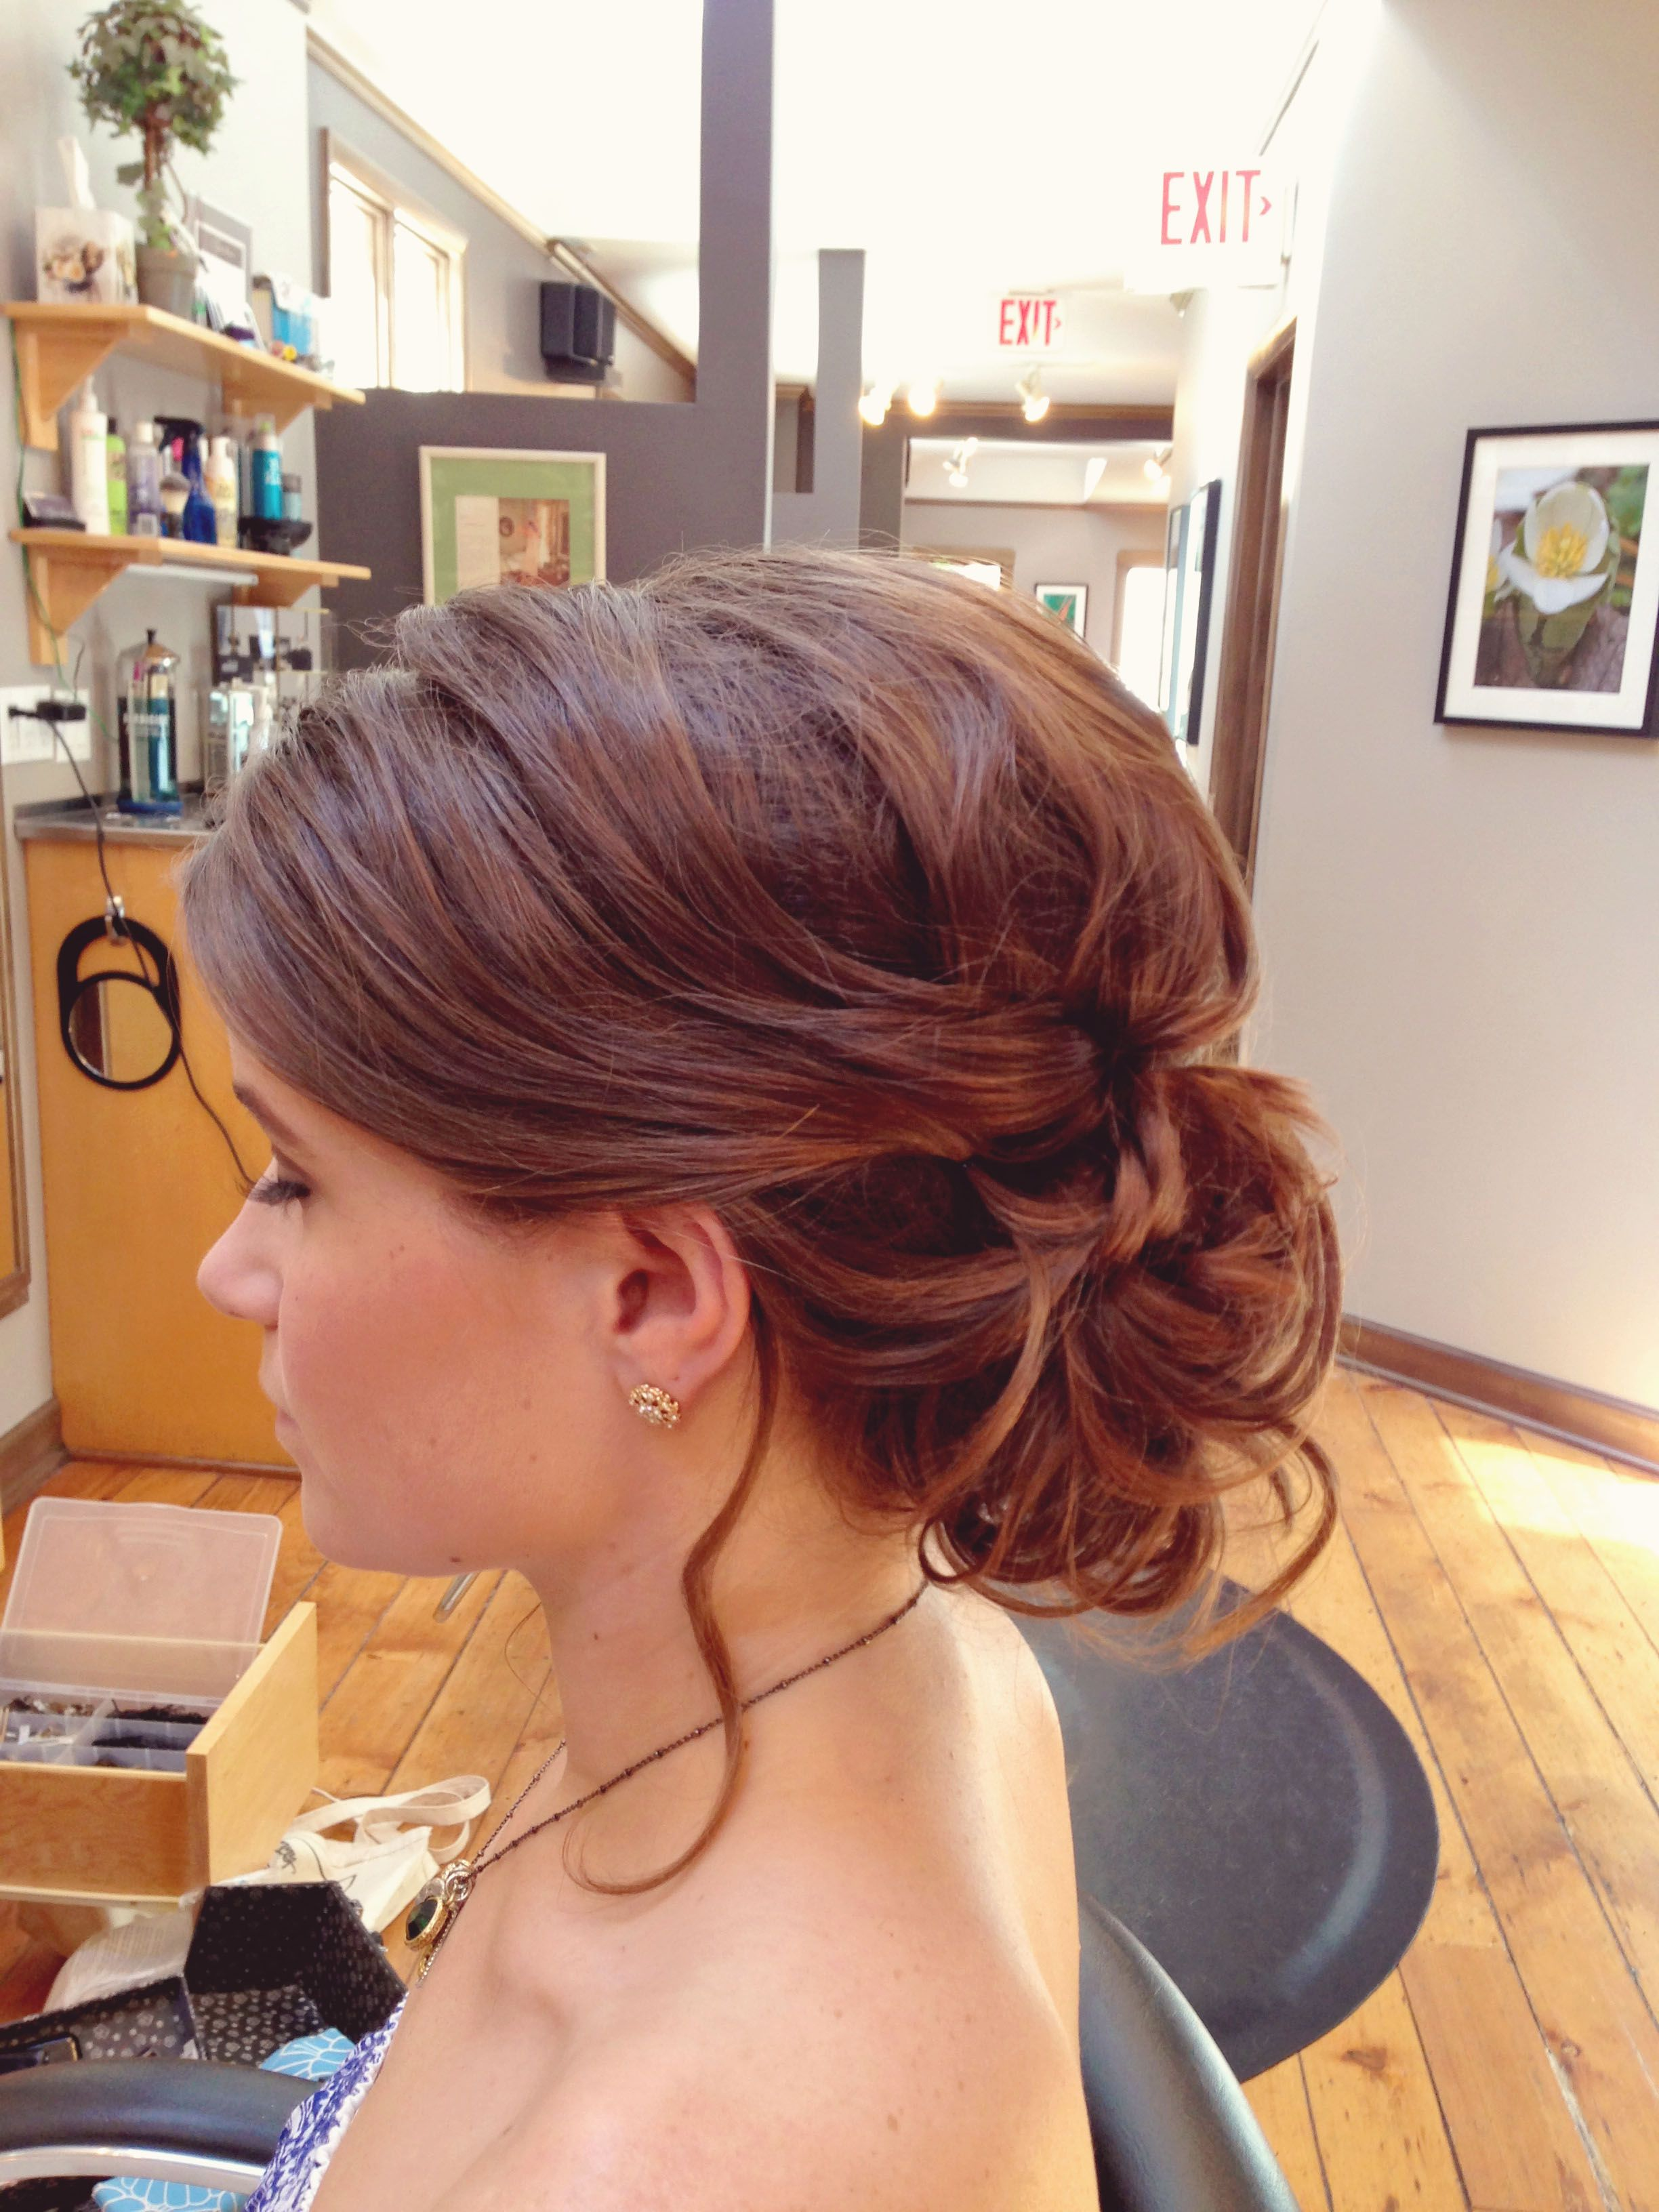 Jennytaylor wedding hair and makeup in chicago lovely locks